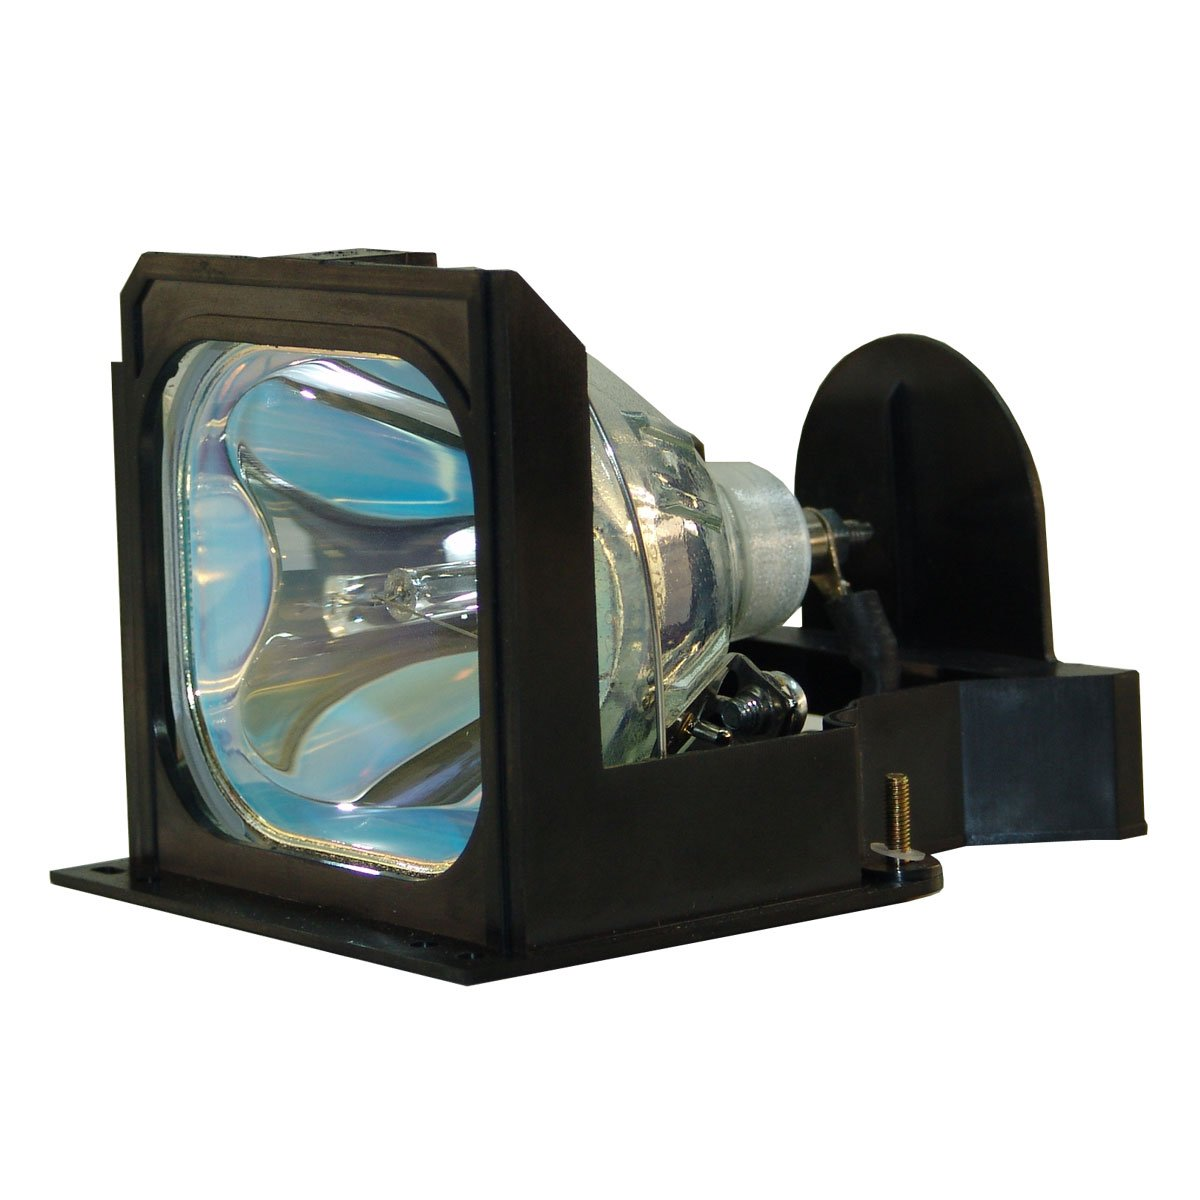 Lutema OEM 交換用ランプ ハウジング/電球付き JVC M-499D007O30-SA用 Platinum (Brighter/Durable) Platinum (Brighter/Durable) Lamp with Housing B07KTJNZHW